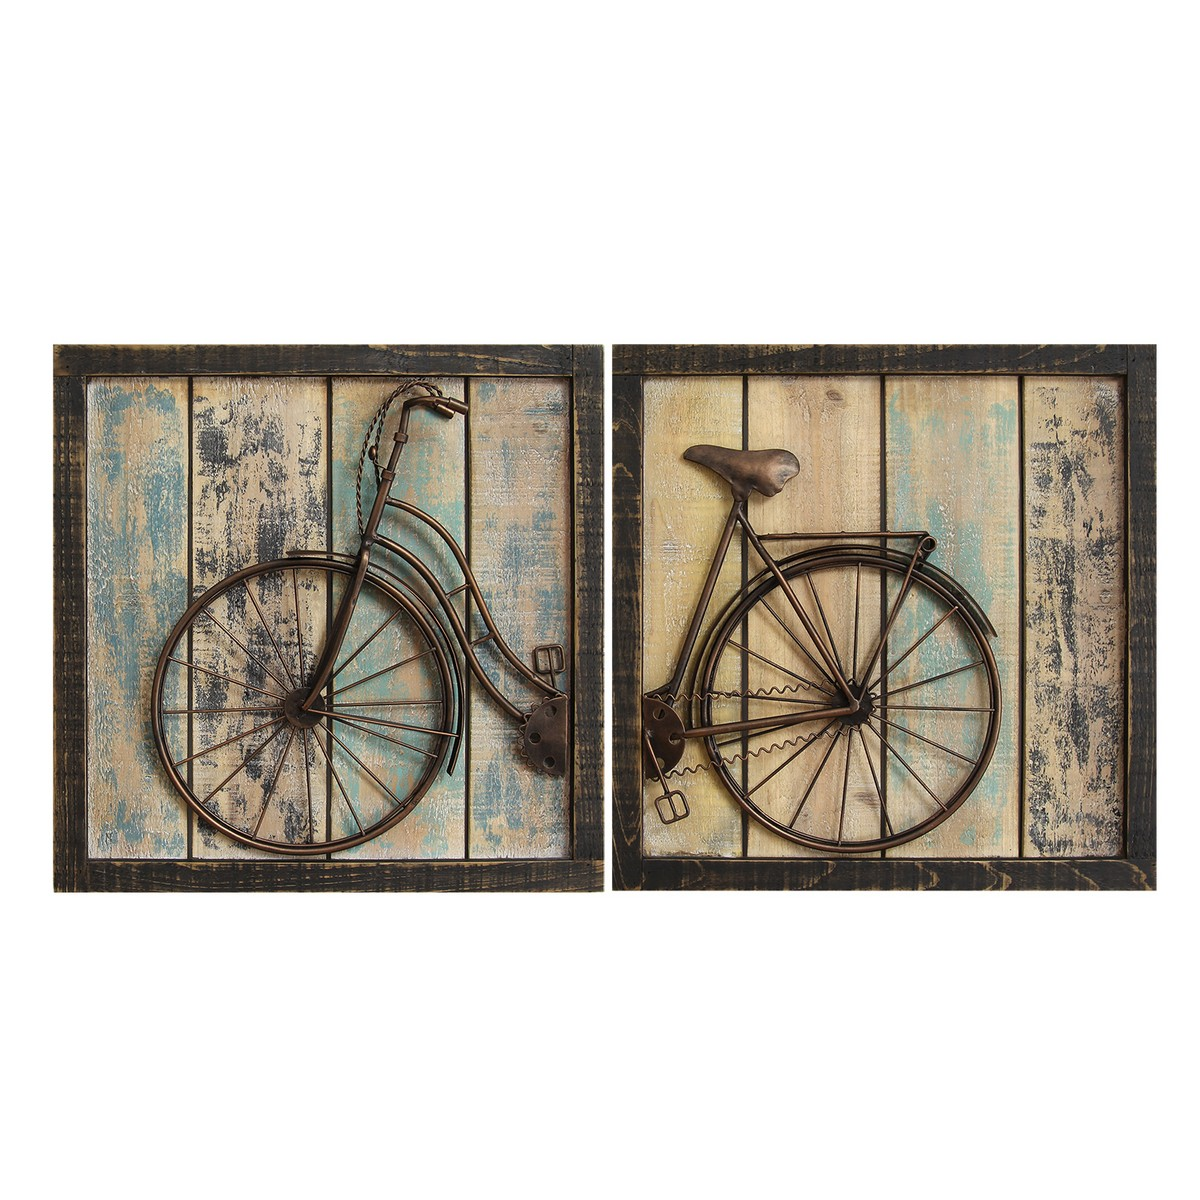 Stratton home decor set of 2 rustic bicycle wall decor for Stratton house